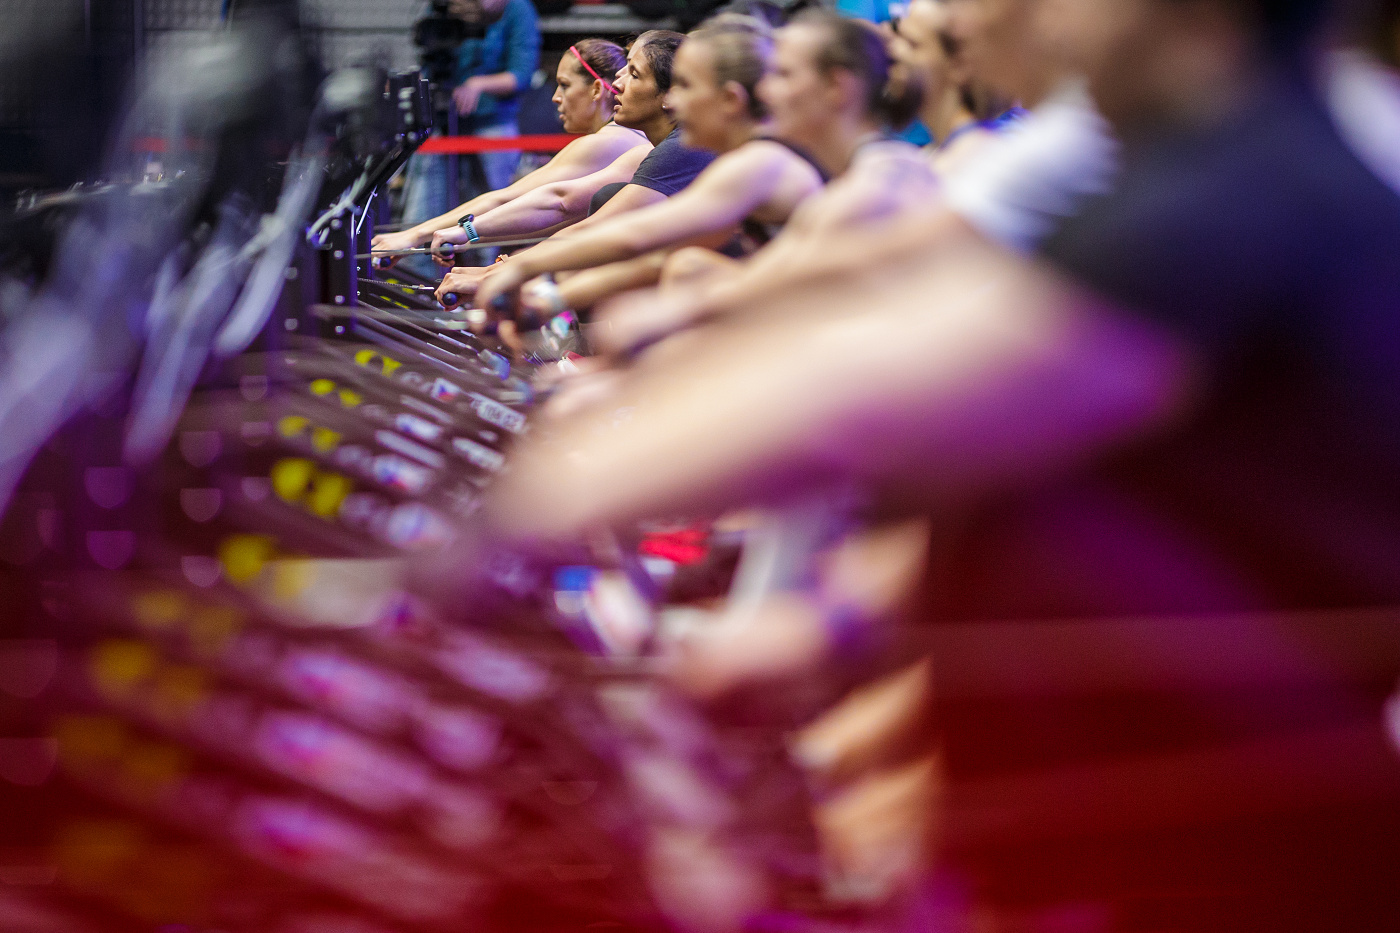 IndoorRowing2019_04